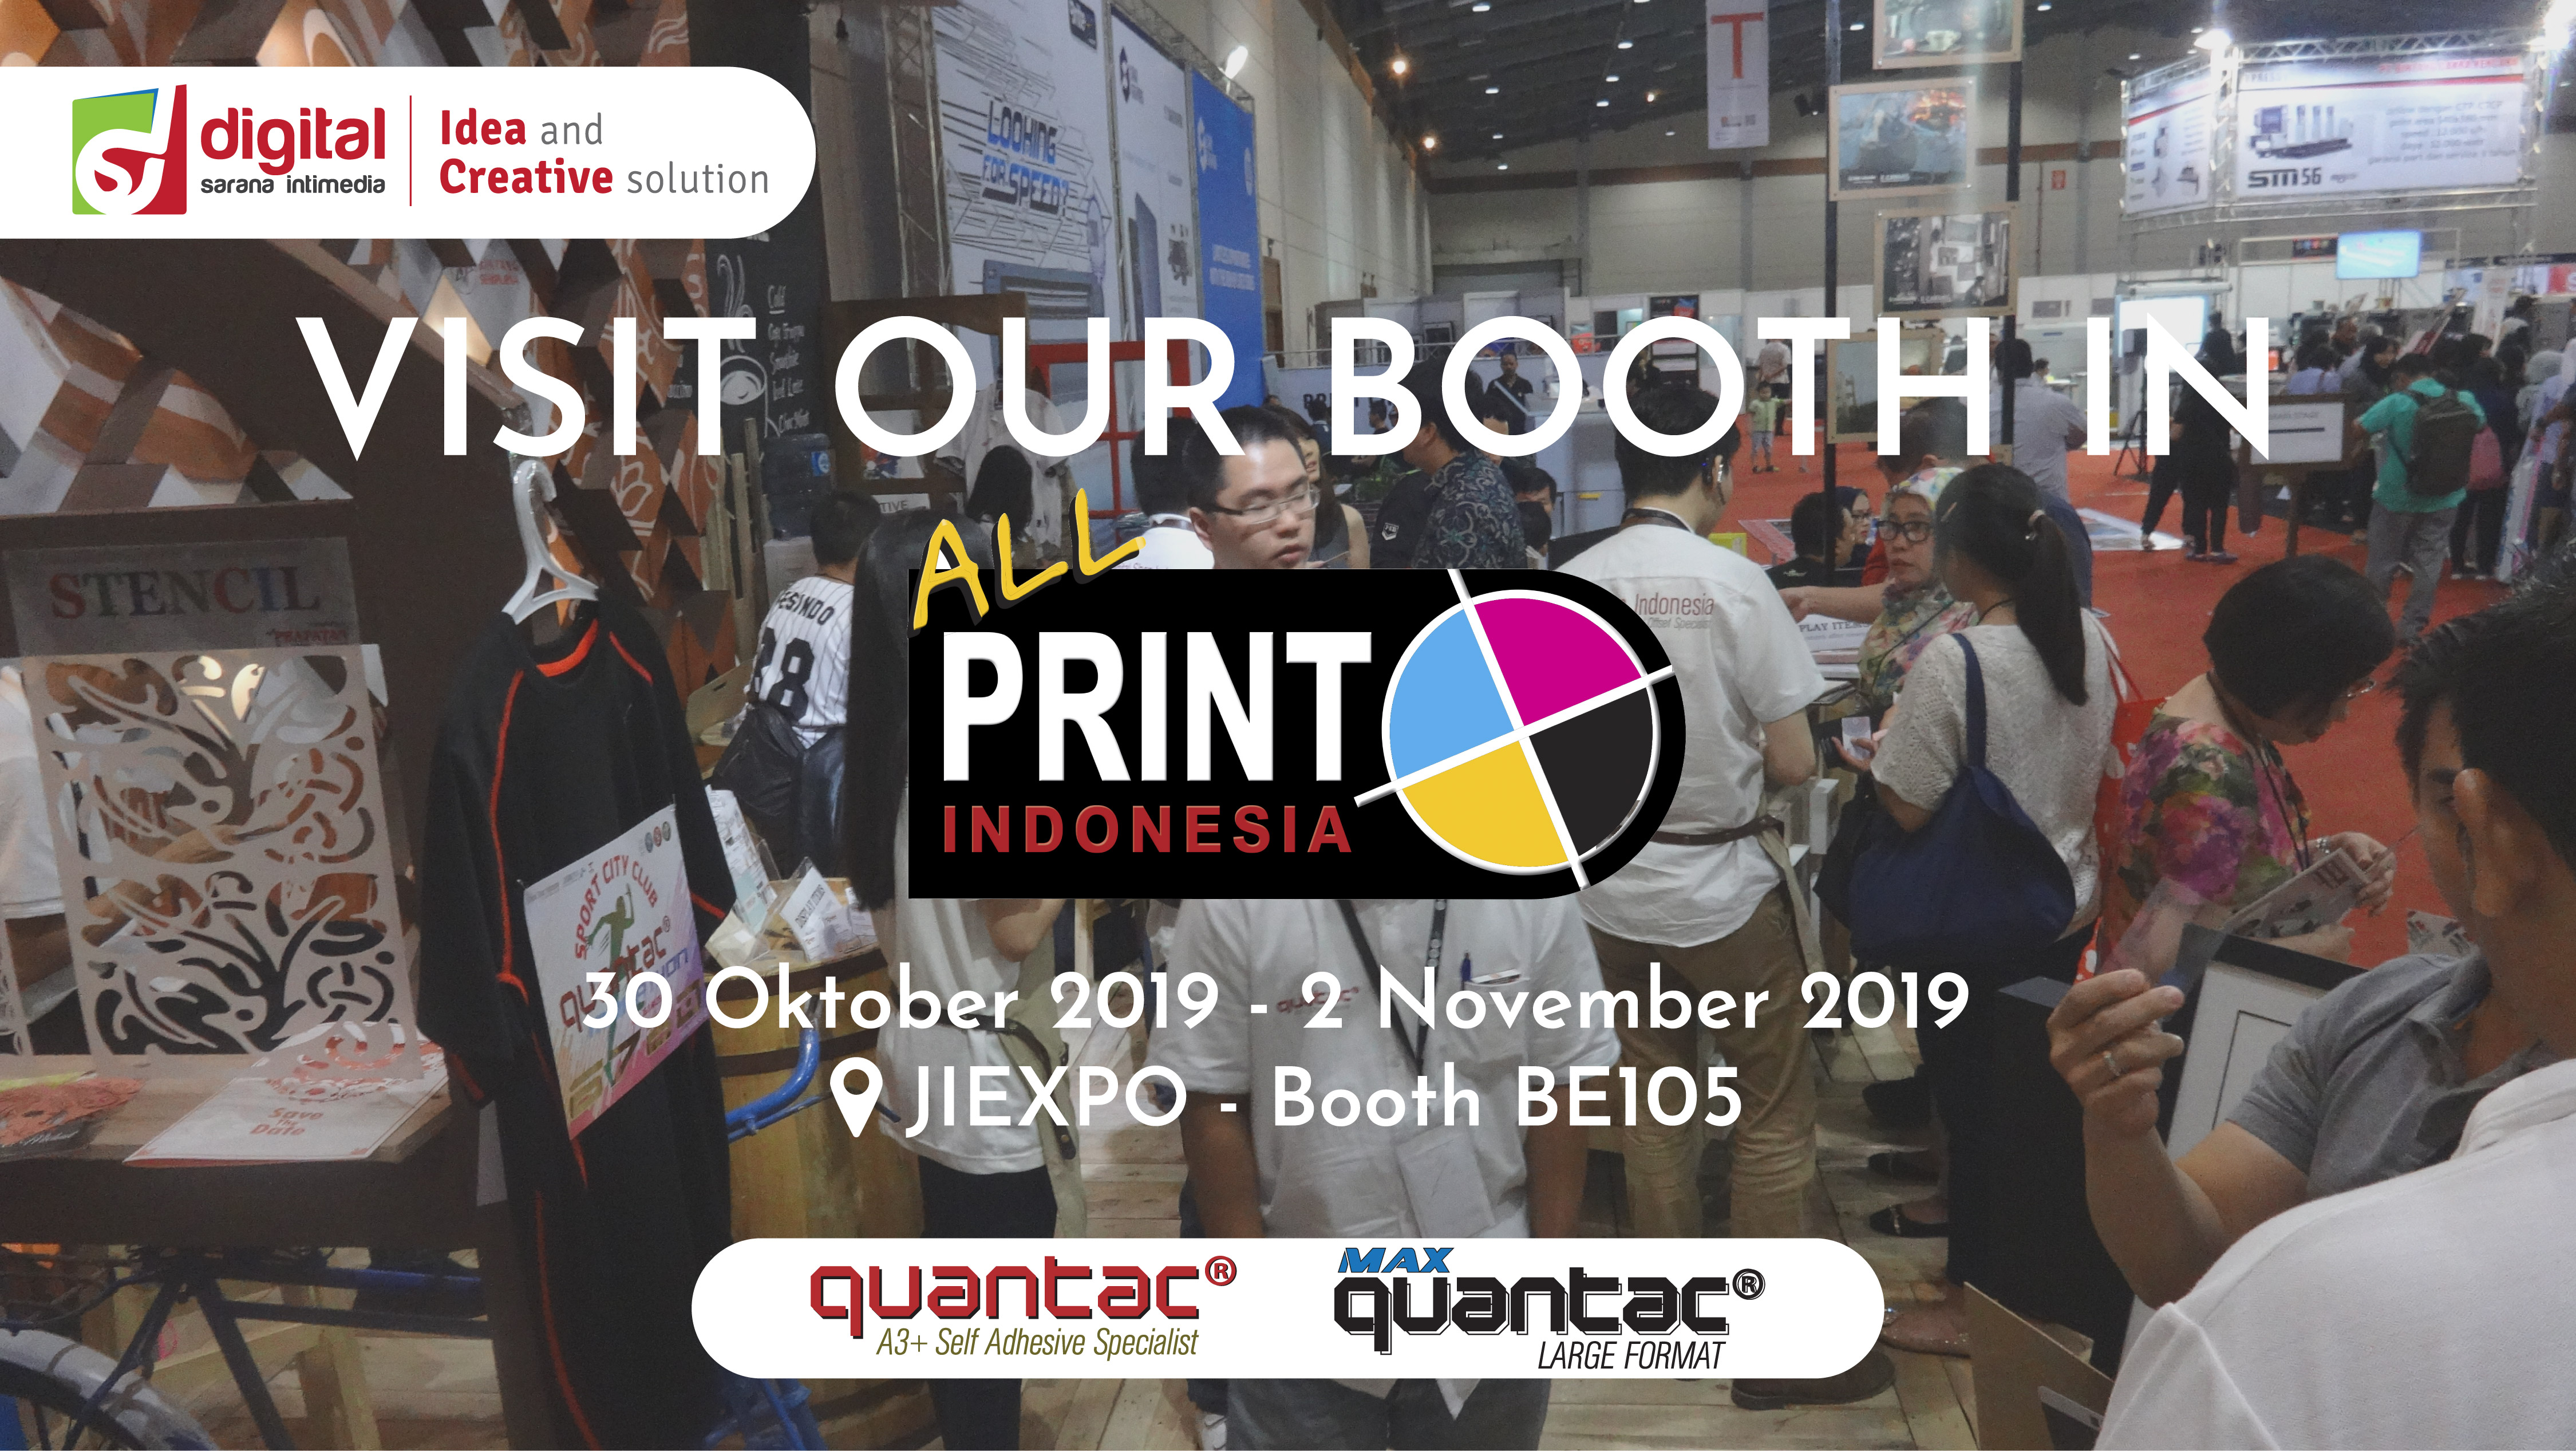 All Print Indonesia 2019 JIExpo Kemayoran 29 Oktober - 2 November 2019